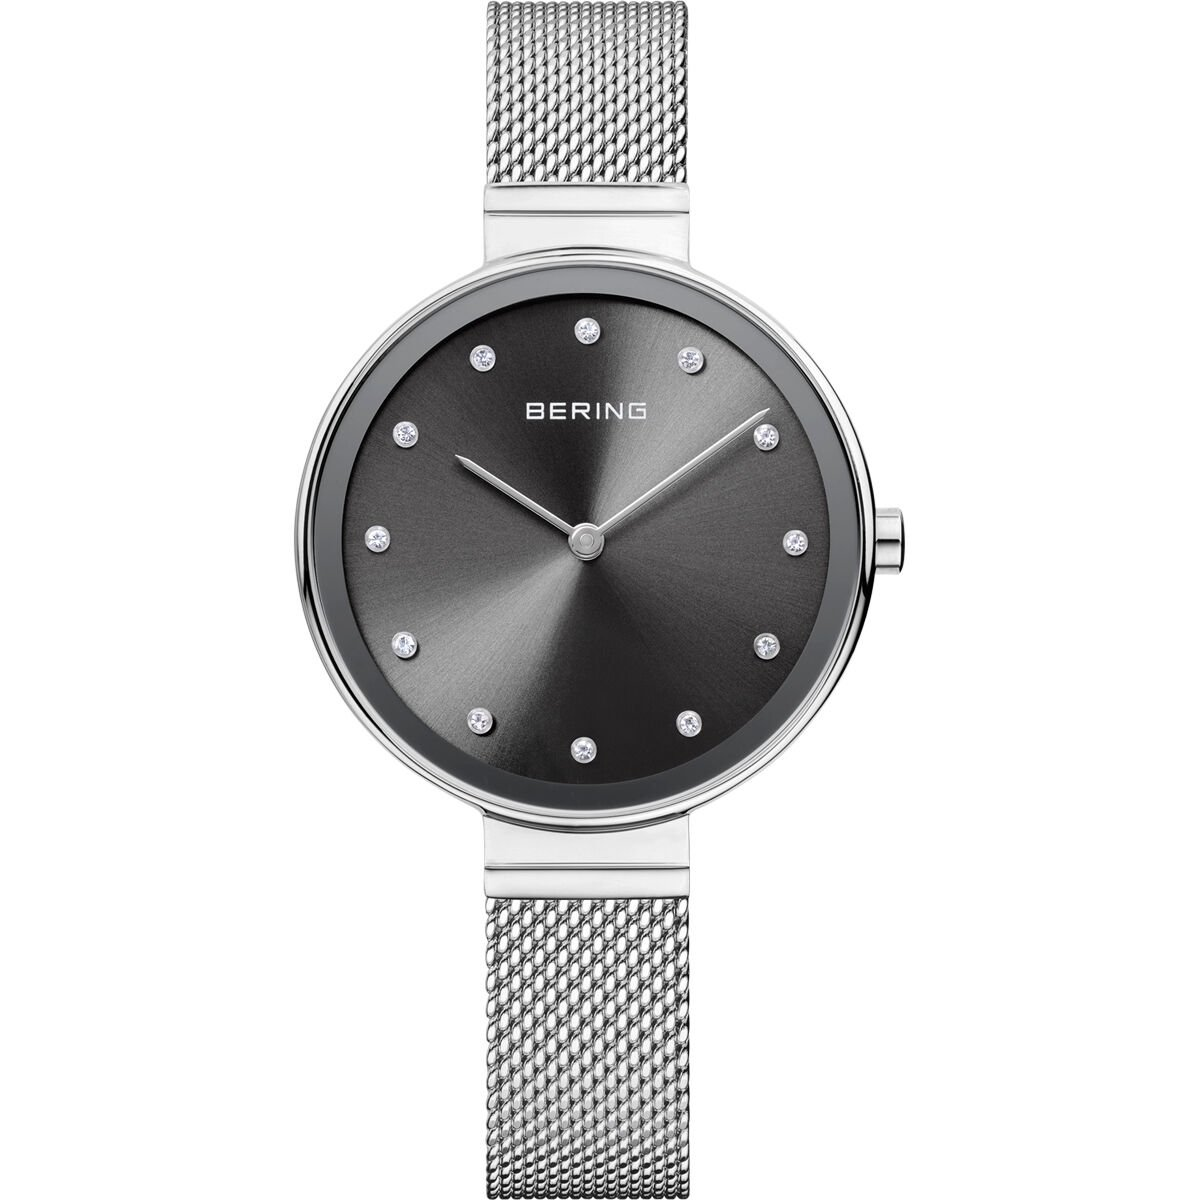 12034 Bering Watch Wristwatch About Meshband Ladies 009 Details Classic Slim 7gvIbyYf6